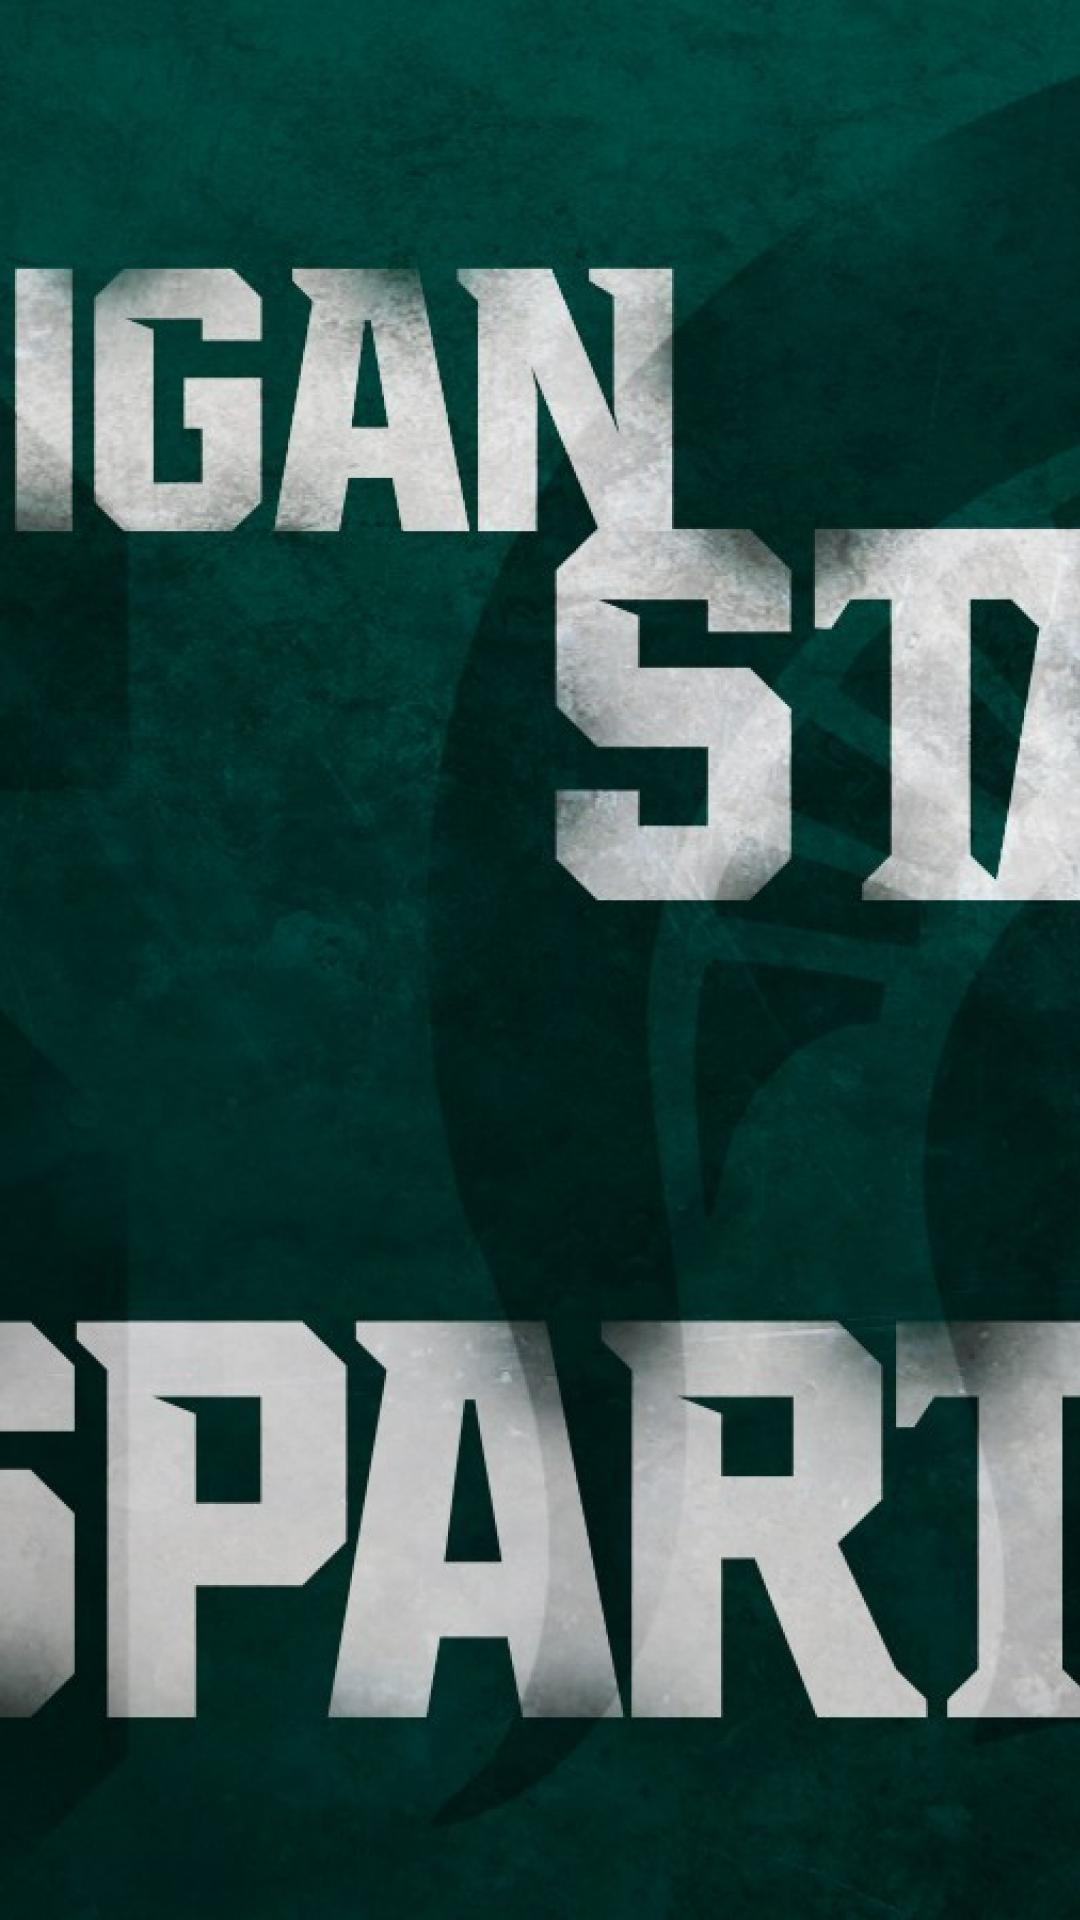 Nokia x5 00 images amp pictures becuo - Michigan State Spartans Wallpaper 62795